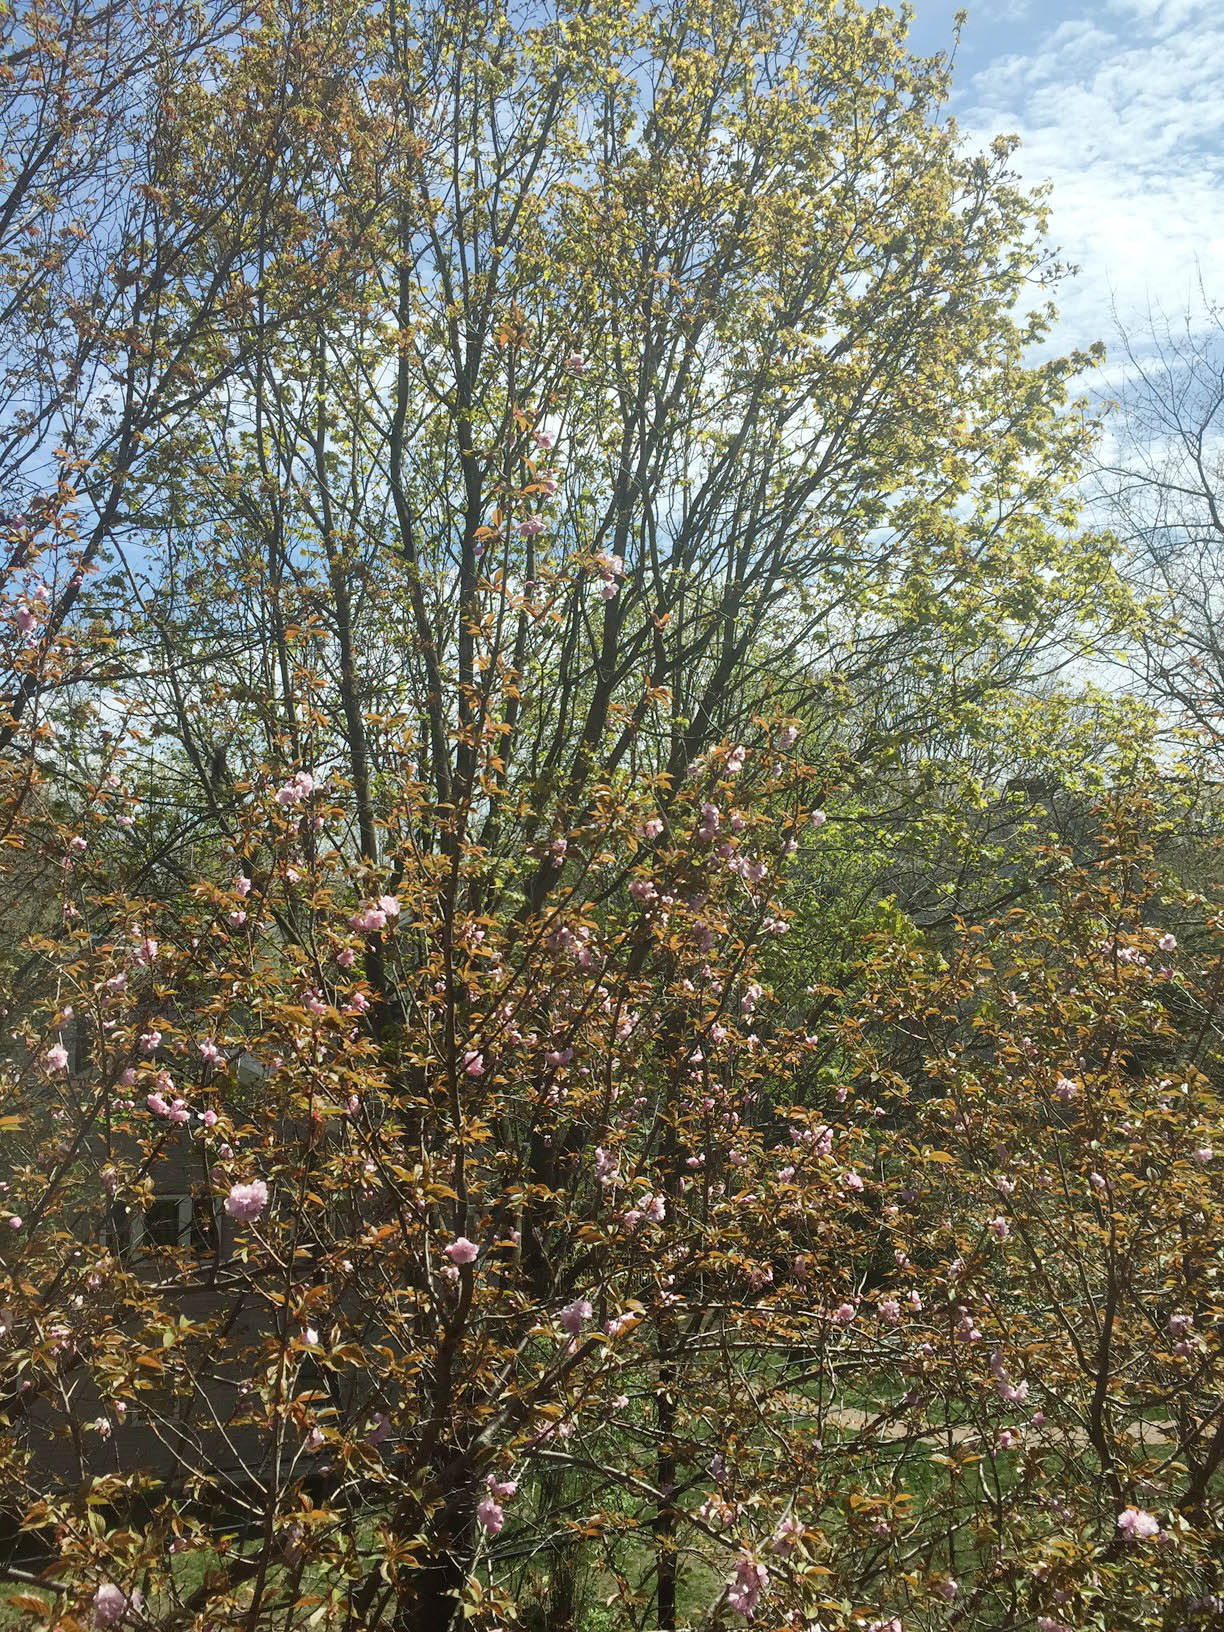 Pink blossoms started popping on the tree outside my window today!